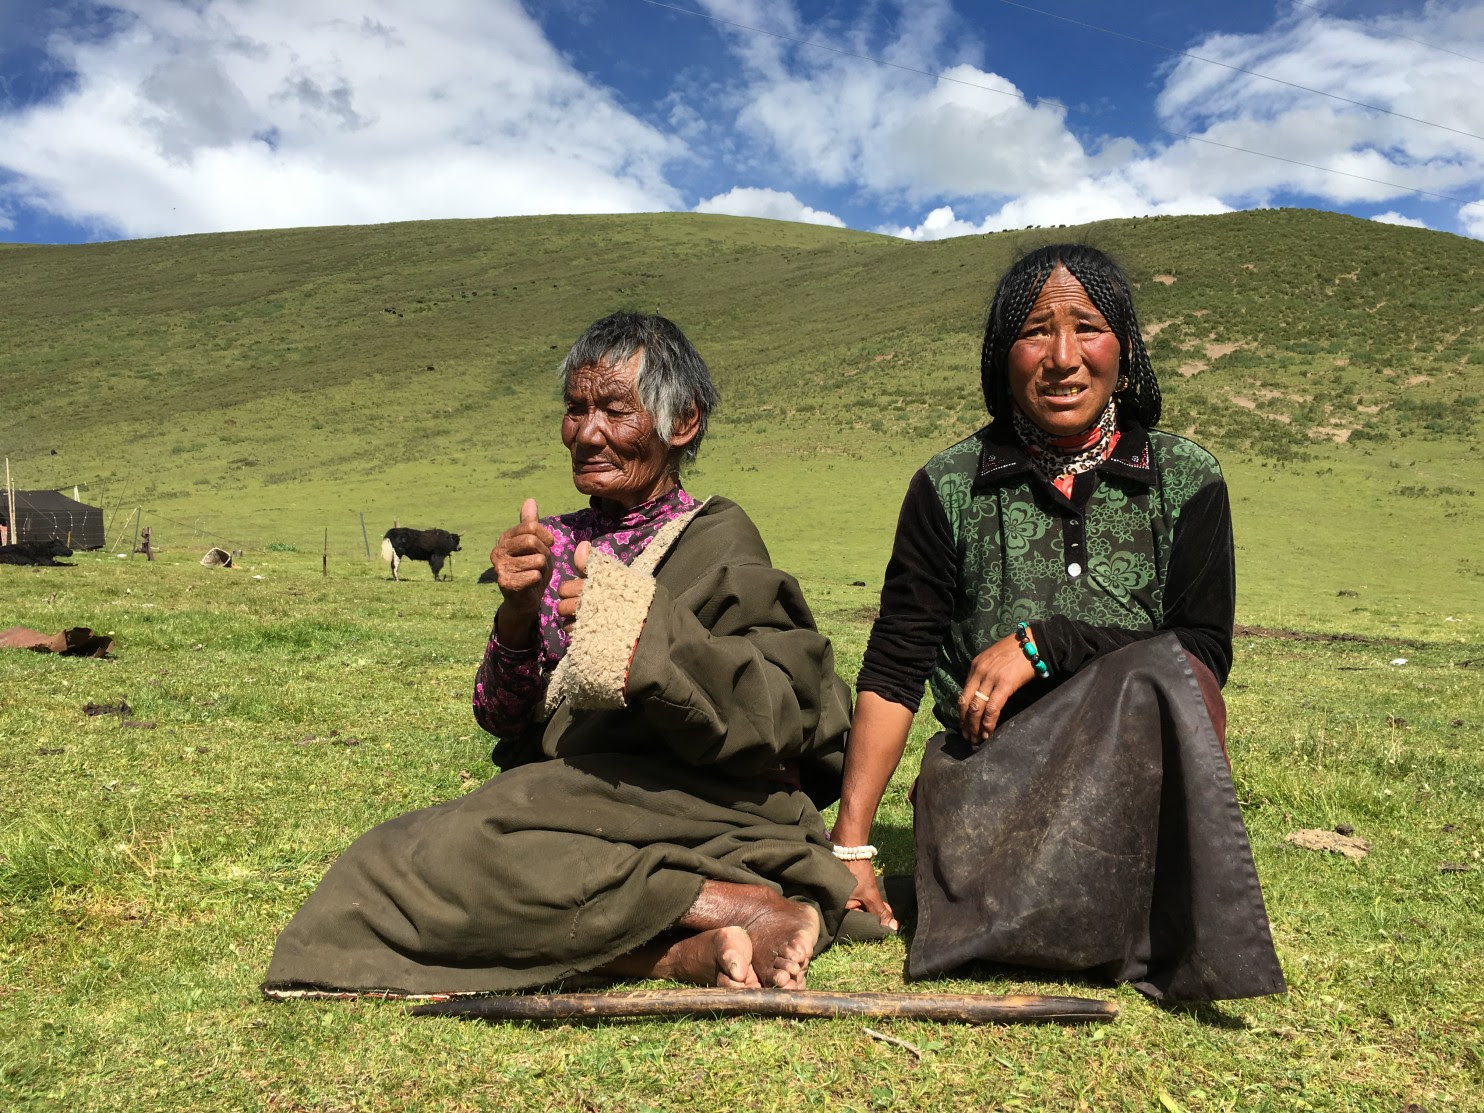 Tsering Tso's grandmother, Lhadhey, 83, and mother, Adhey, 49, on the grasslands outside the small town of Chalong in China's western Sichuan province. Last October, Tibetans protested in Chalong after 27-year-old Tsering Tso was found hanged from a bridge in the town, prompting mass arrests, beatings and a government crackdown. (Xu Yangjingjing/The Washington Post). (Xu Yangjingjing/TWP)